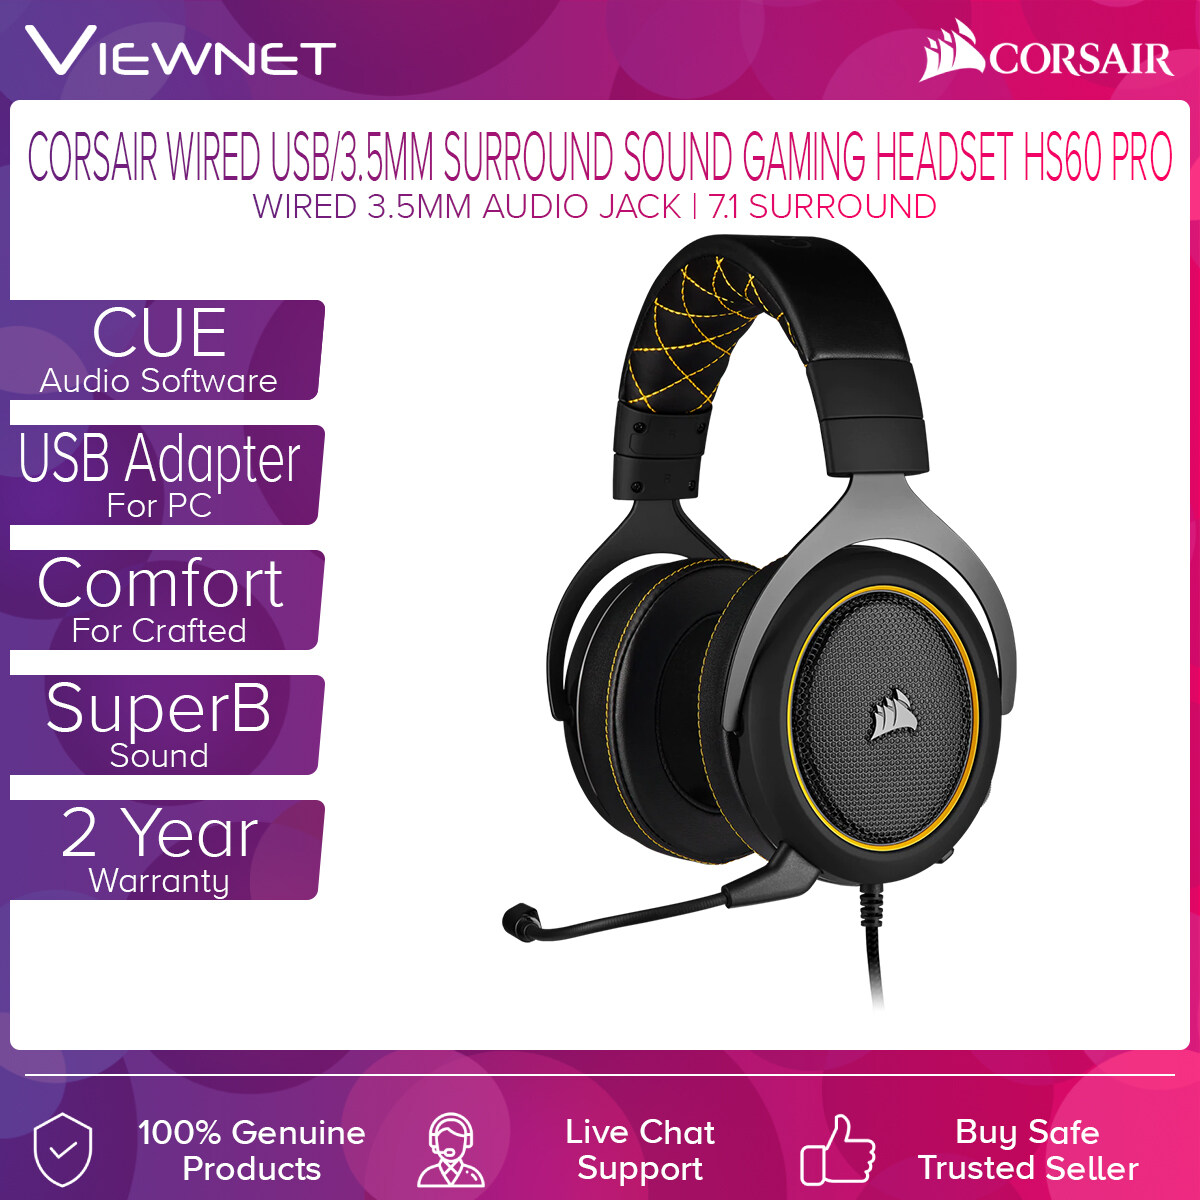 Corsair Wired USB/3.5MM Surround Sound Gaming Headset HS60 PRO with 3.1 Surround Sound, CUE Audio Software, USB Adapter For PC, SuperB Sound, Crafted For Comfort